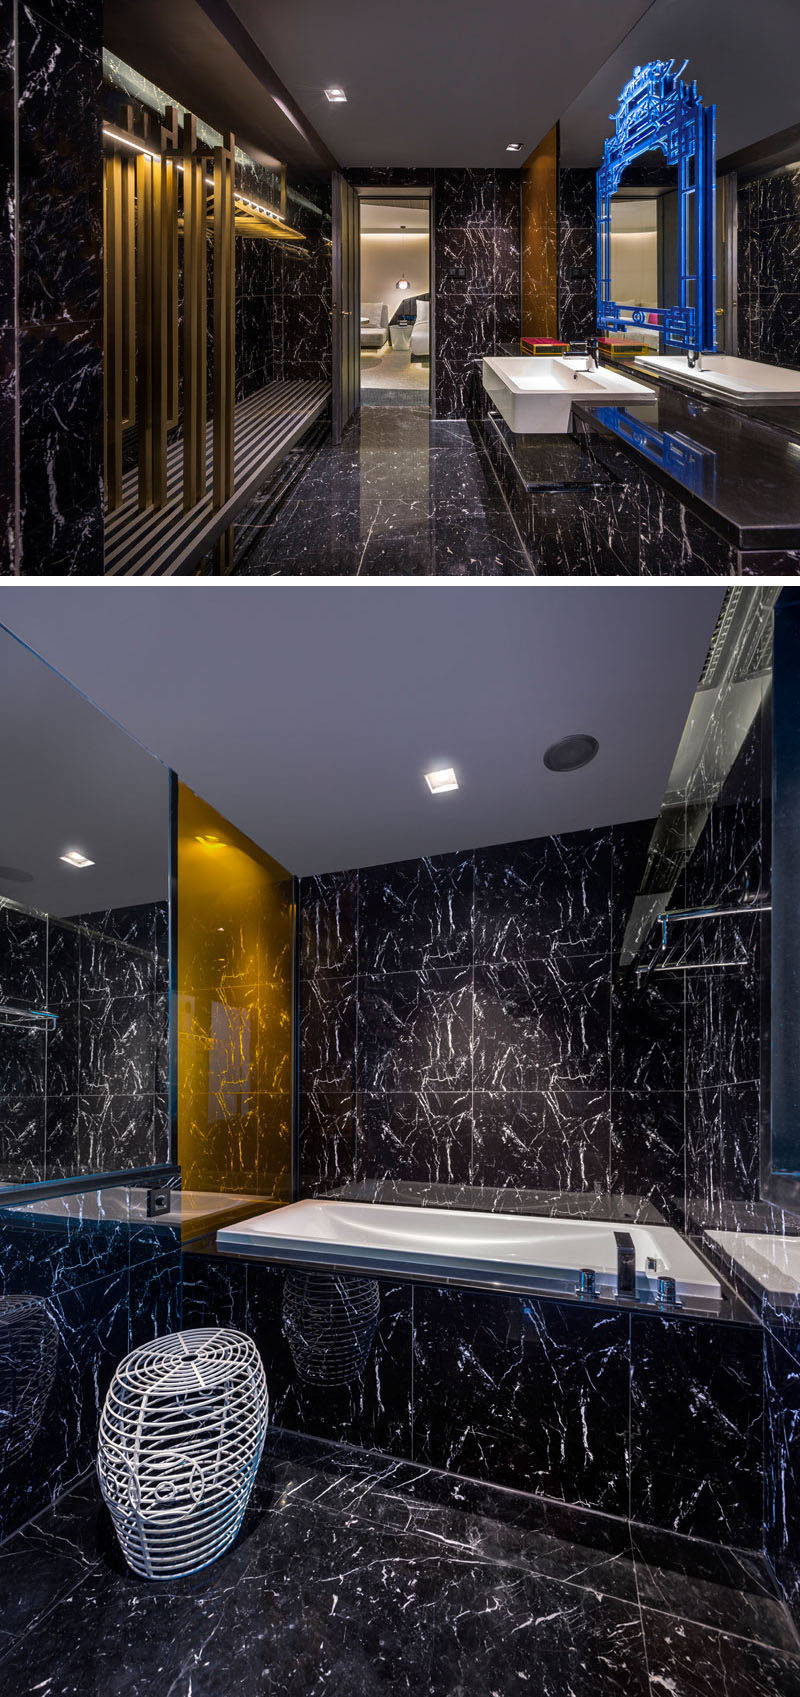 In this modern hotel bathroom, gold accents have been used and a blue artistic decorative accent breaks up the large mirror. #ModernBathroom #HotelBathroom #BlackBathroom